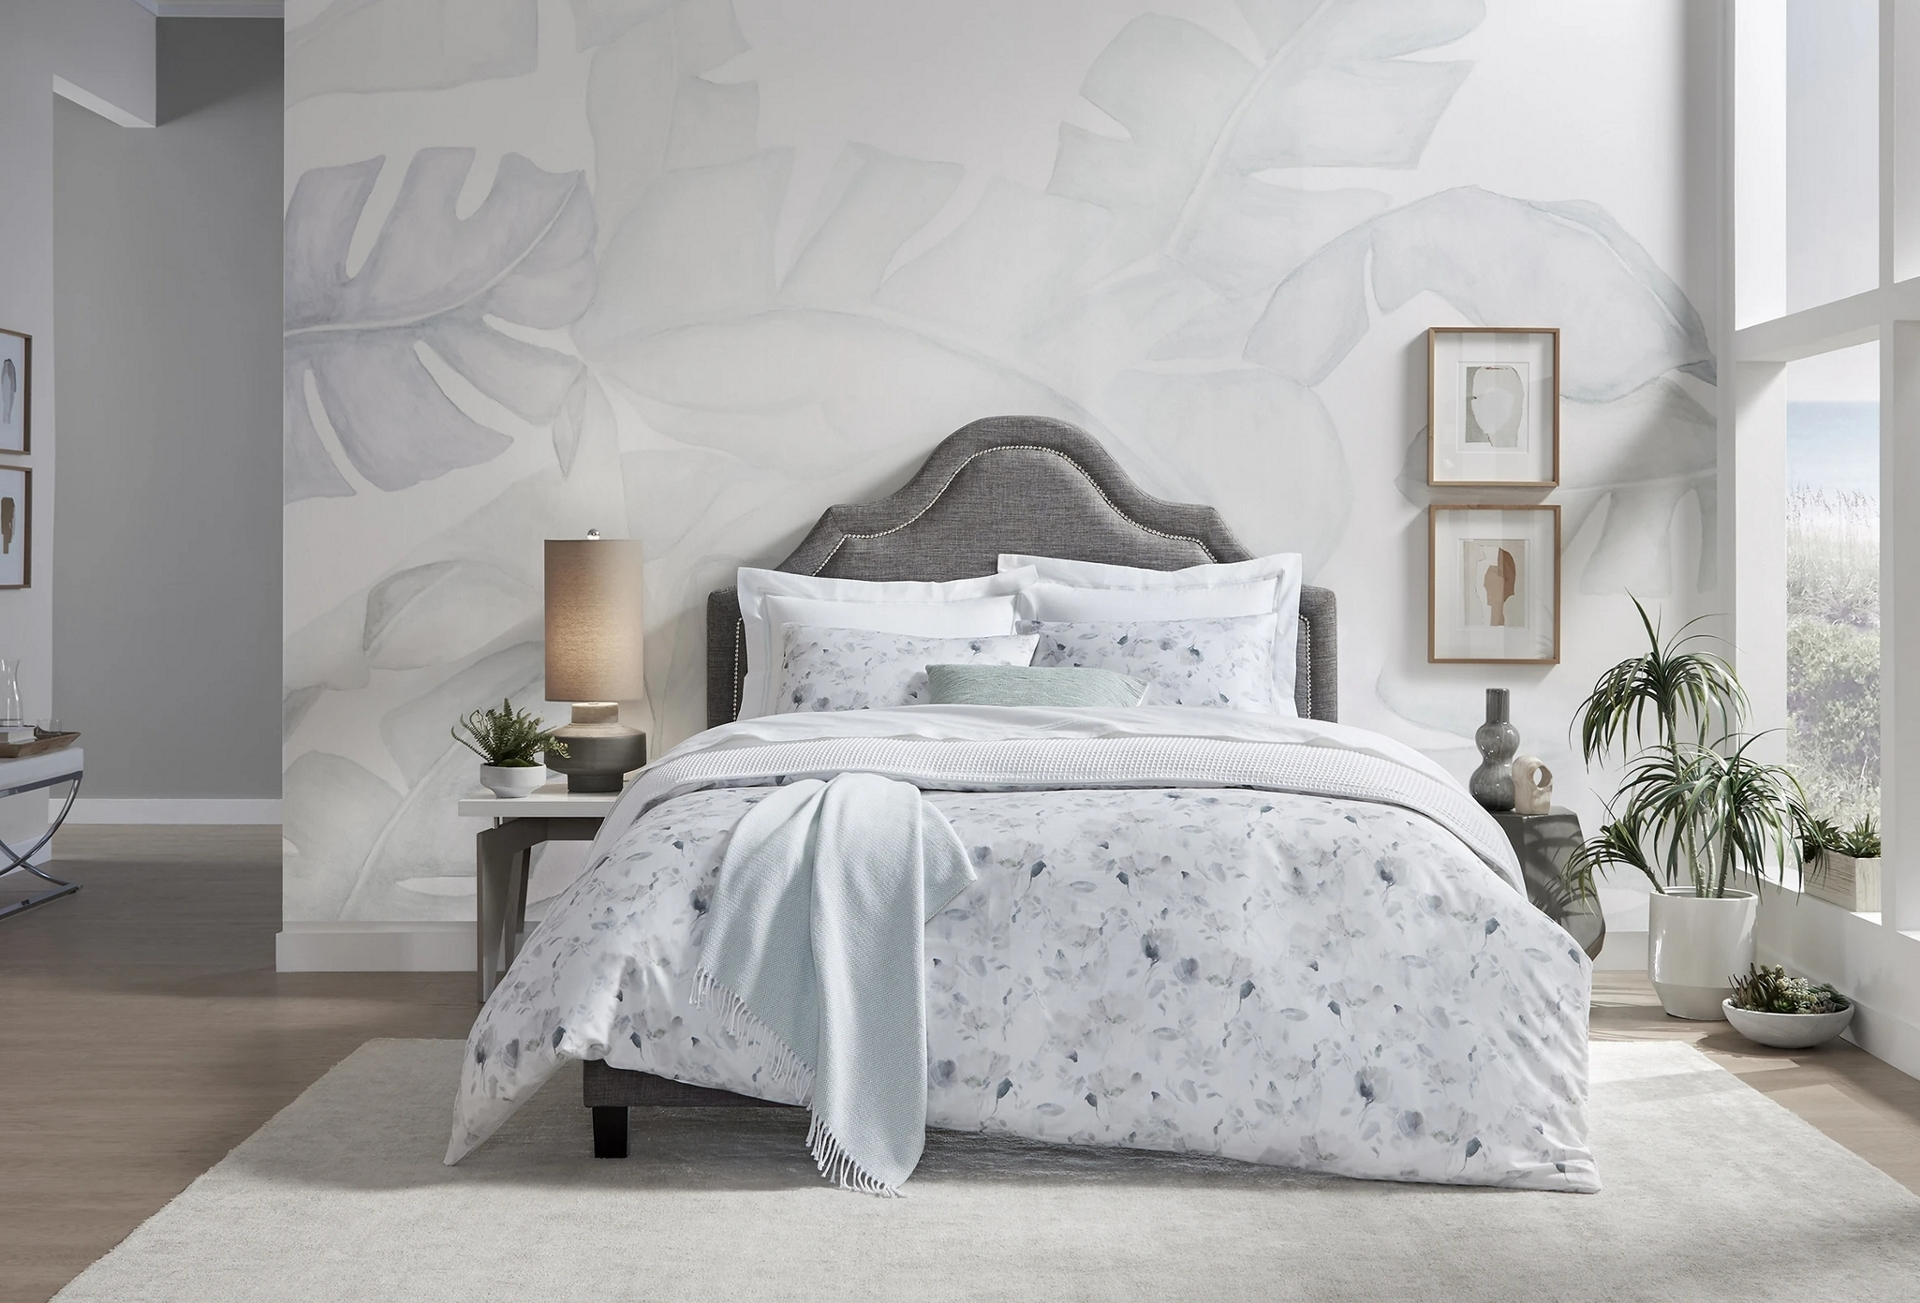 Nessina duvet cover and shams by Sferra